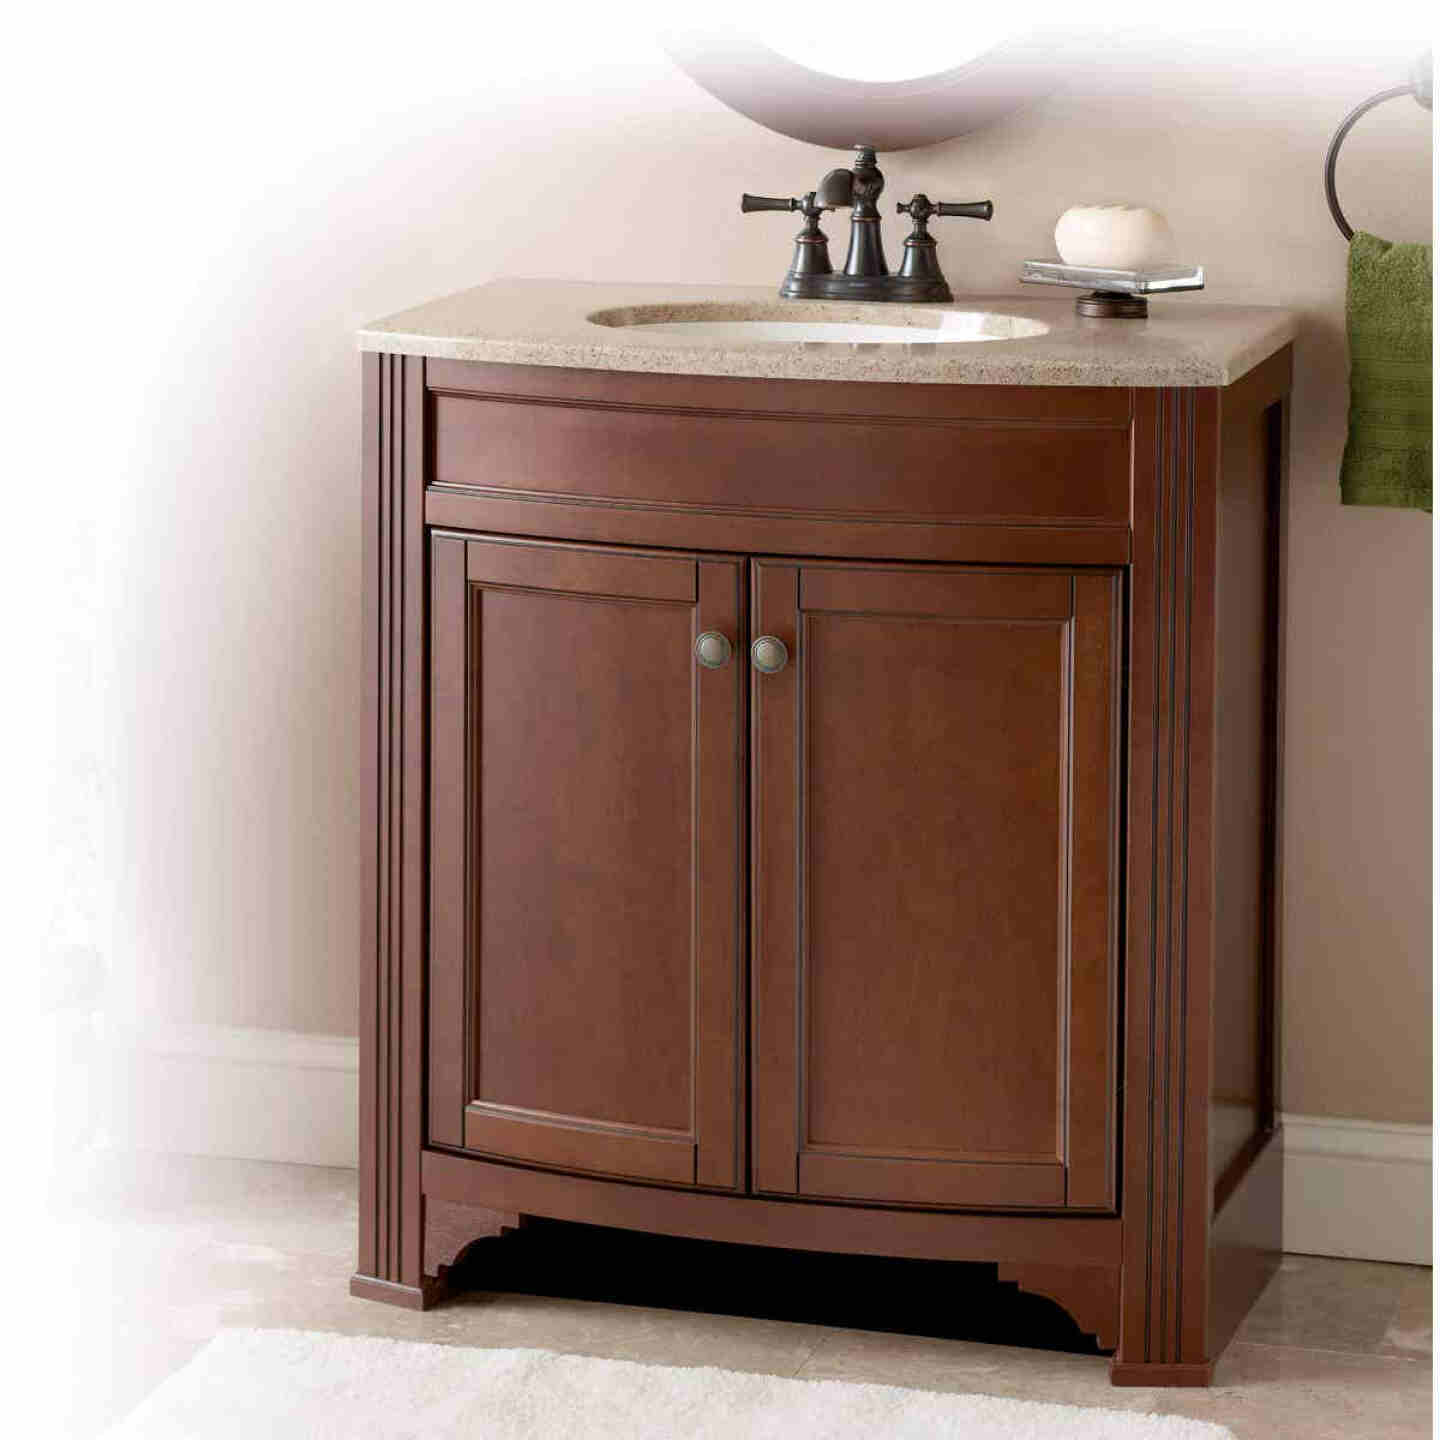 Continental Cabinets Duvall Cafe Black Glaze 30-3/4 In. W x 34-3/4 In. H x 18-1/2 In. D Vanity with Tan/Wht Cultured Marble Top Image 2